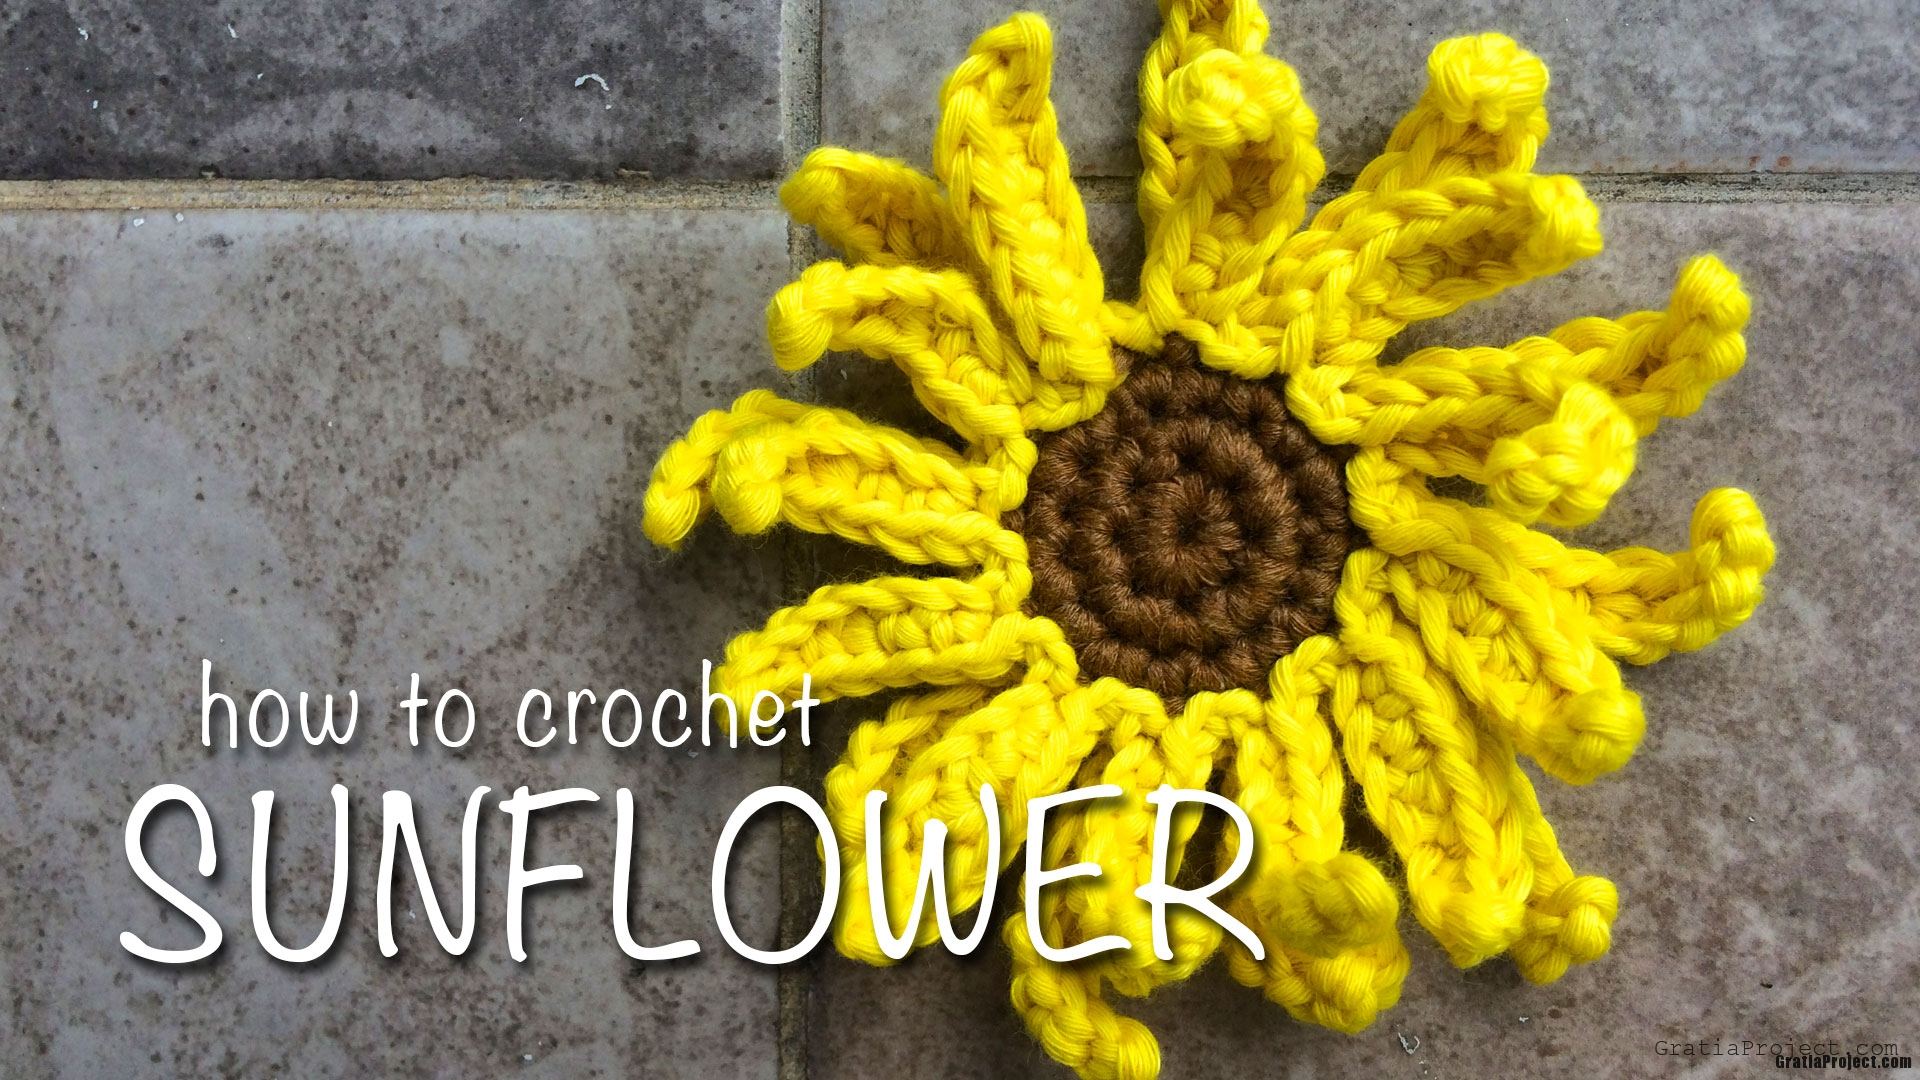 Sunflower Crochet Pattern And Step-by-step Tutorial